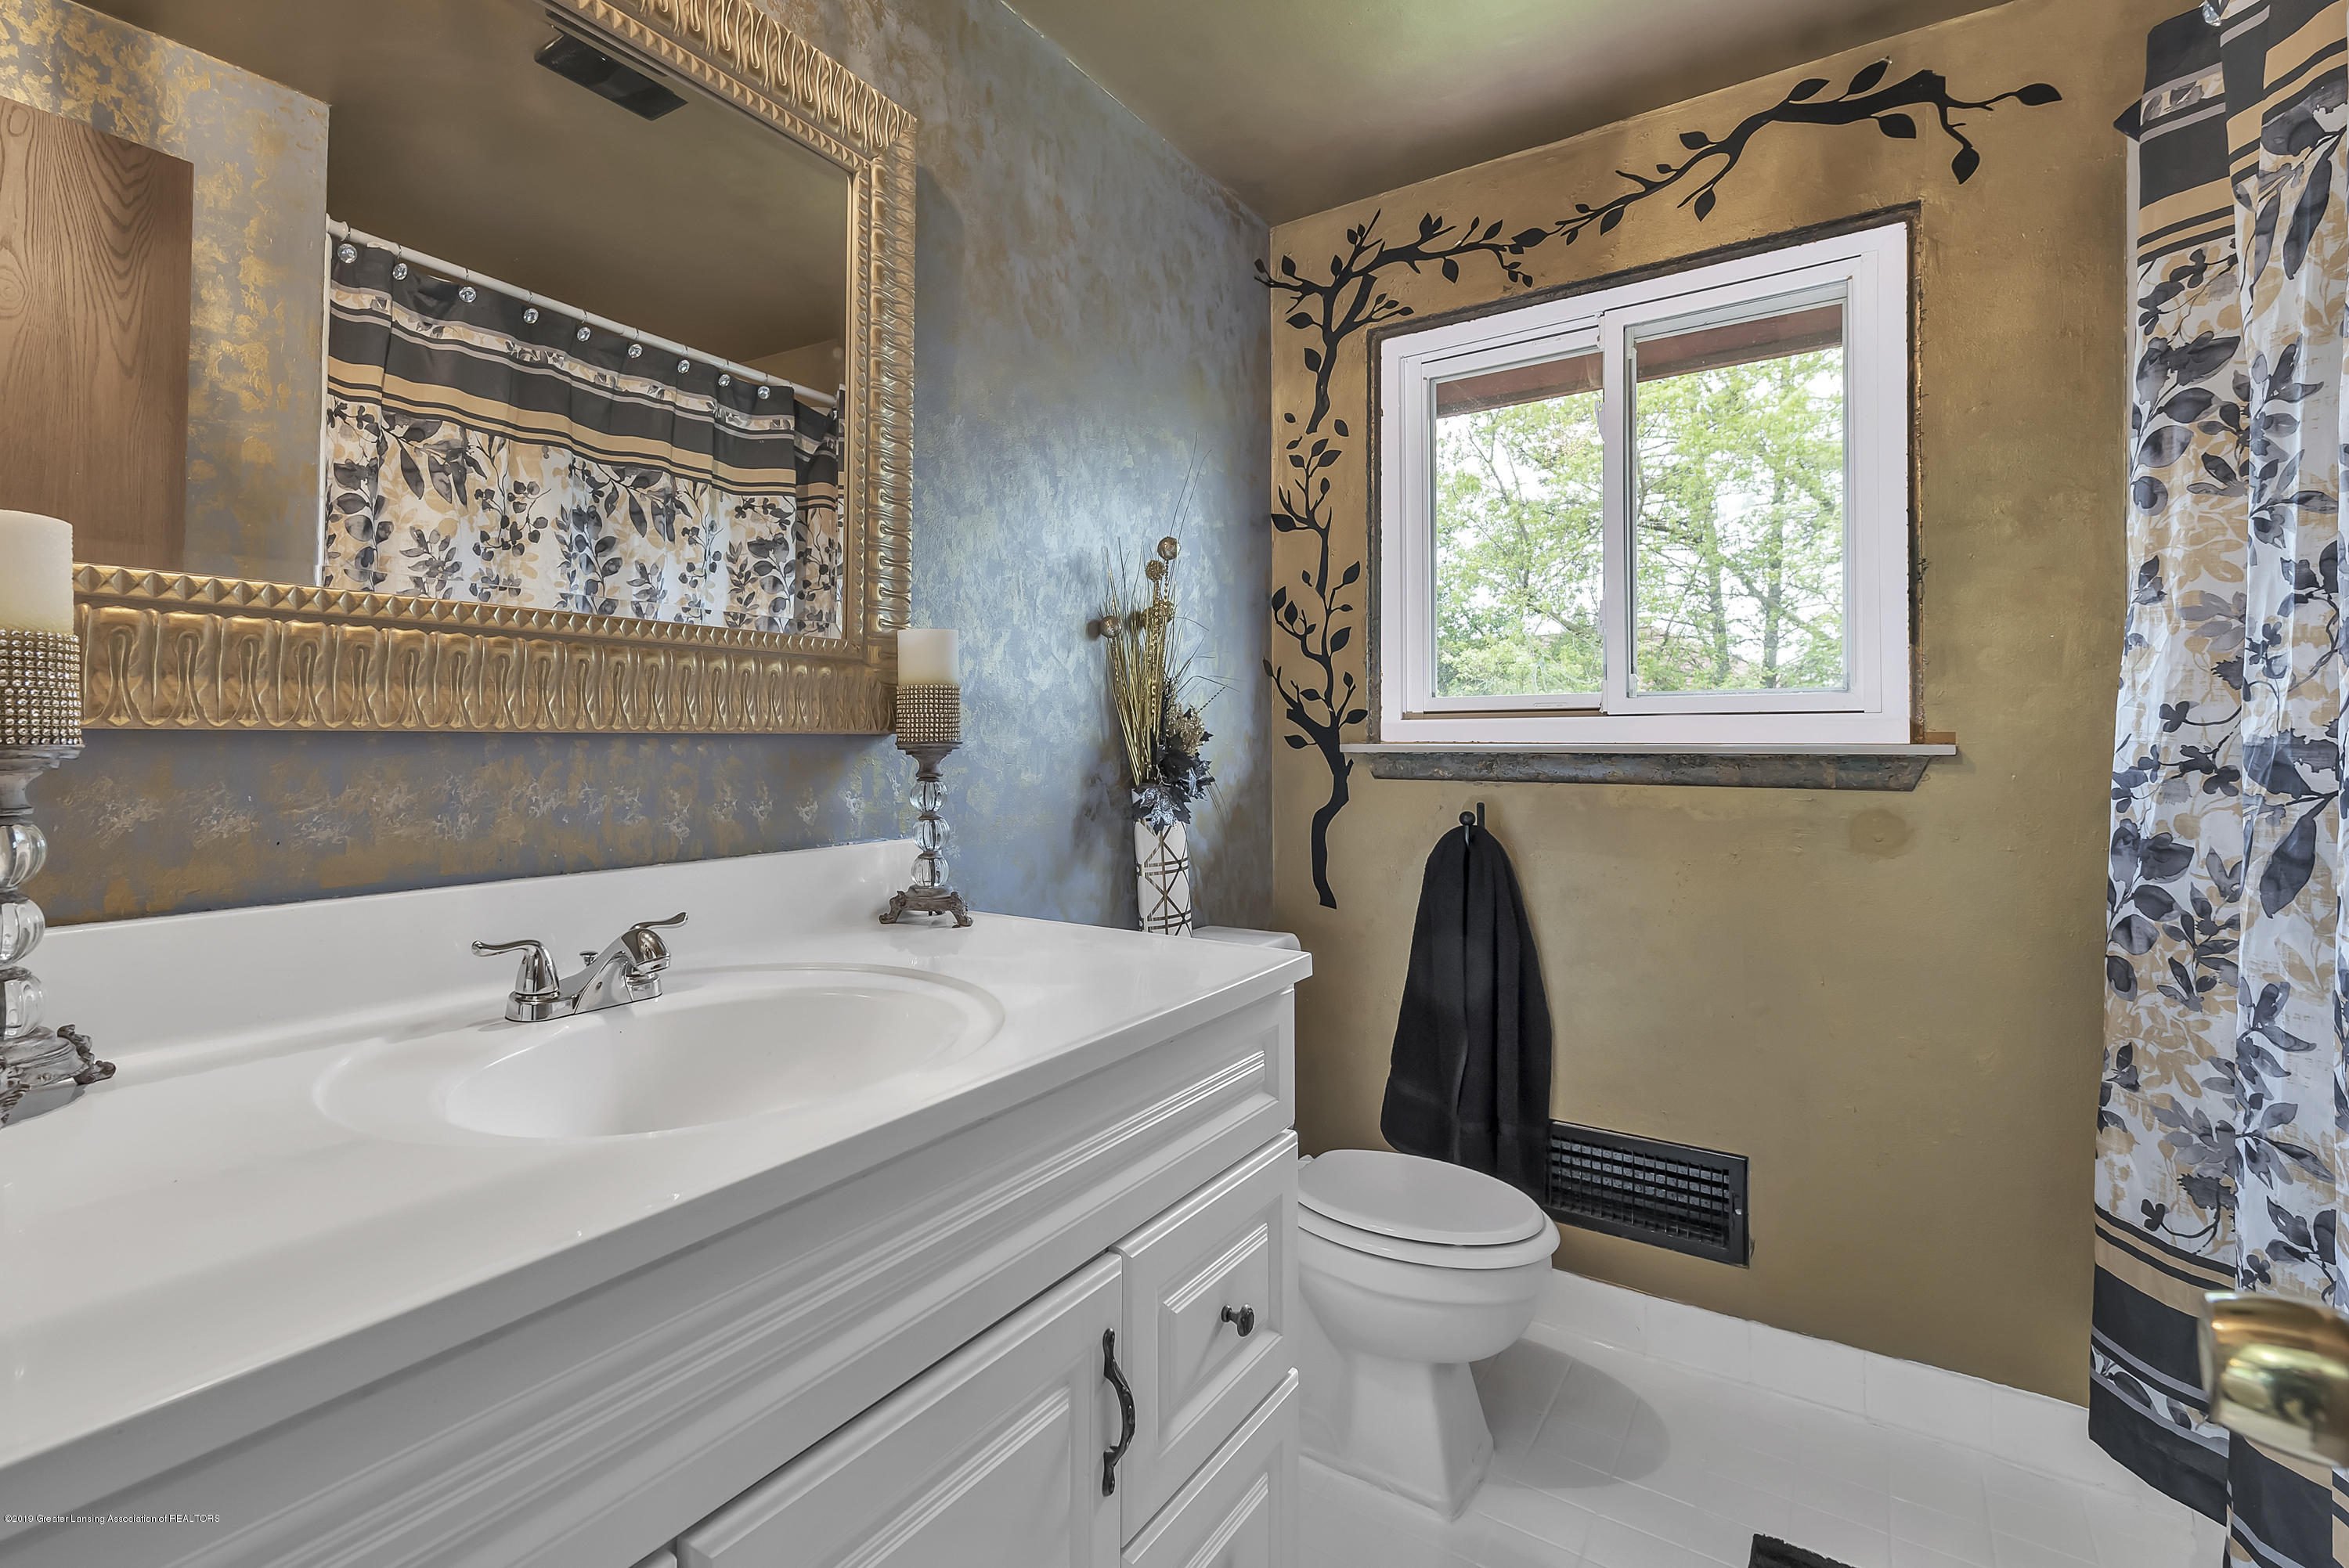 1336 Chartwell Dual Carriage Way - 1336-Chartwell-Duel-Carriage-Way-South-E - 27